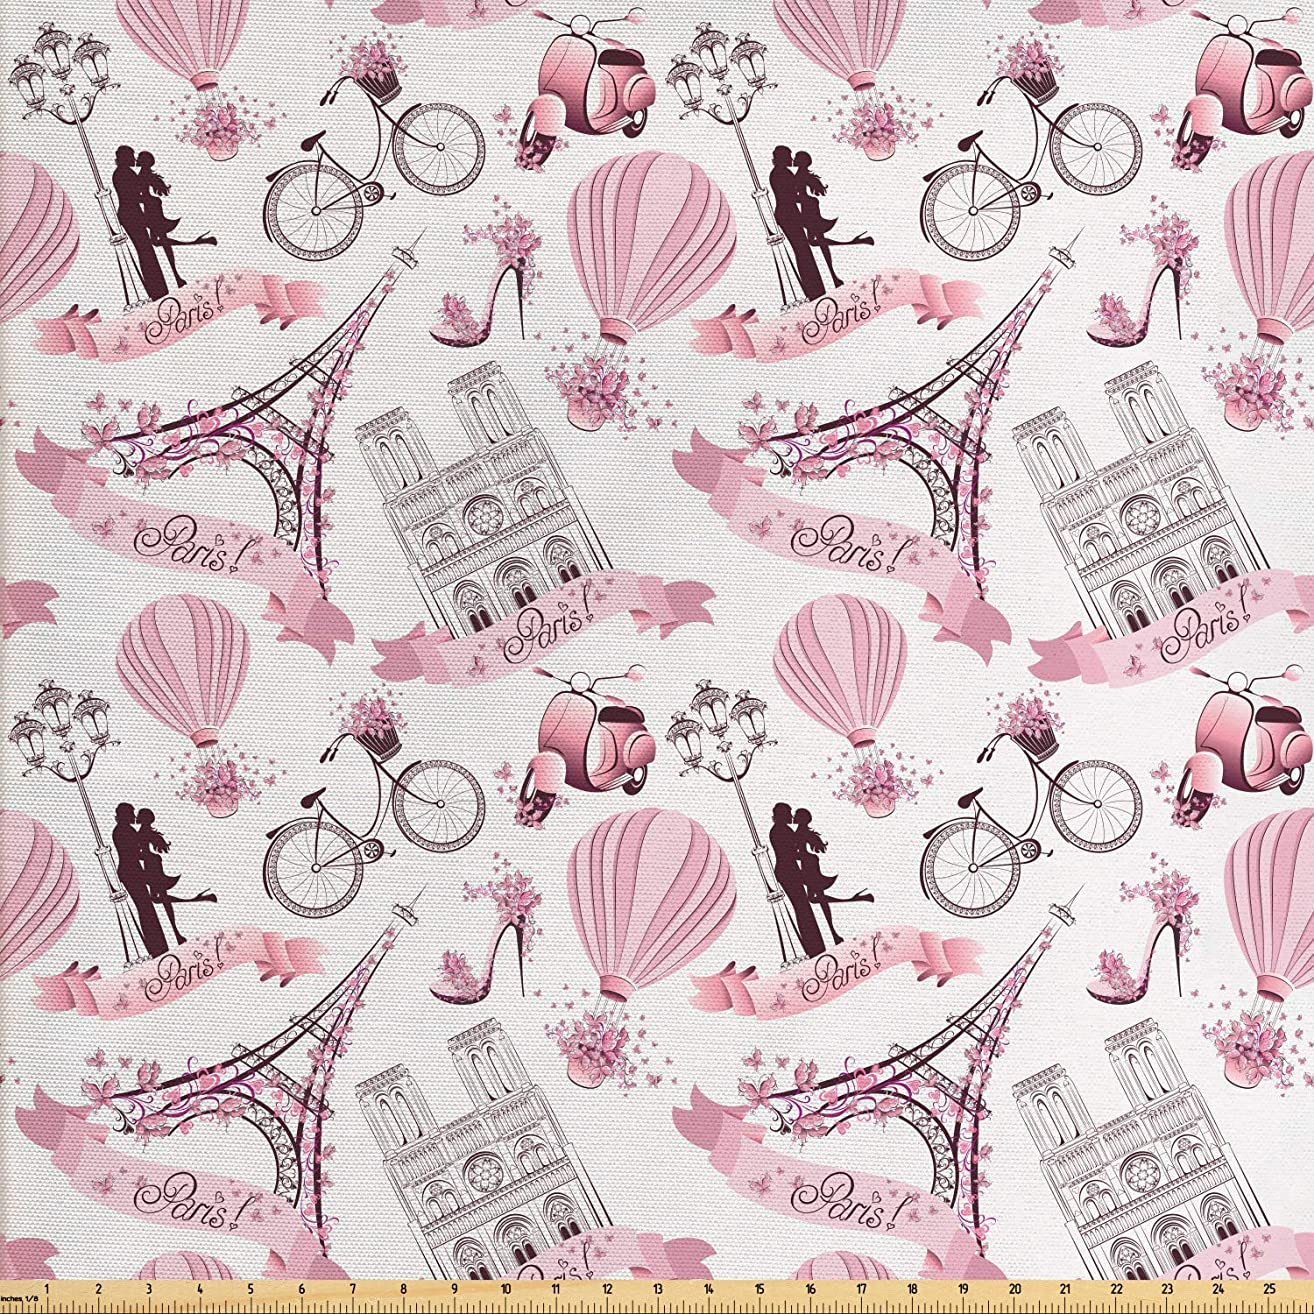 Ambesonne Paris Fabric by The Yard, Valentines Day Theme with Eiffel Kissing Couple Hot Air Balloon Wedding Concept, Decorative Fabric for Upholstery and Home Accents, 5 Yards, Baby Pink Rose cuufuw7176570854